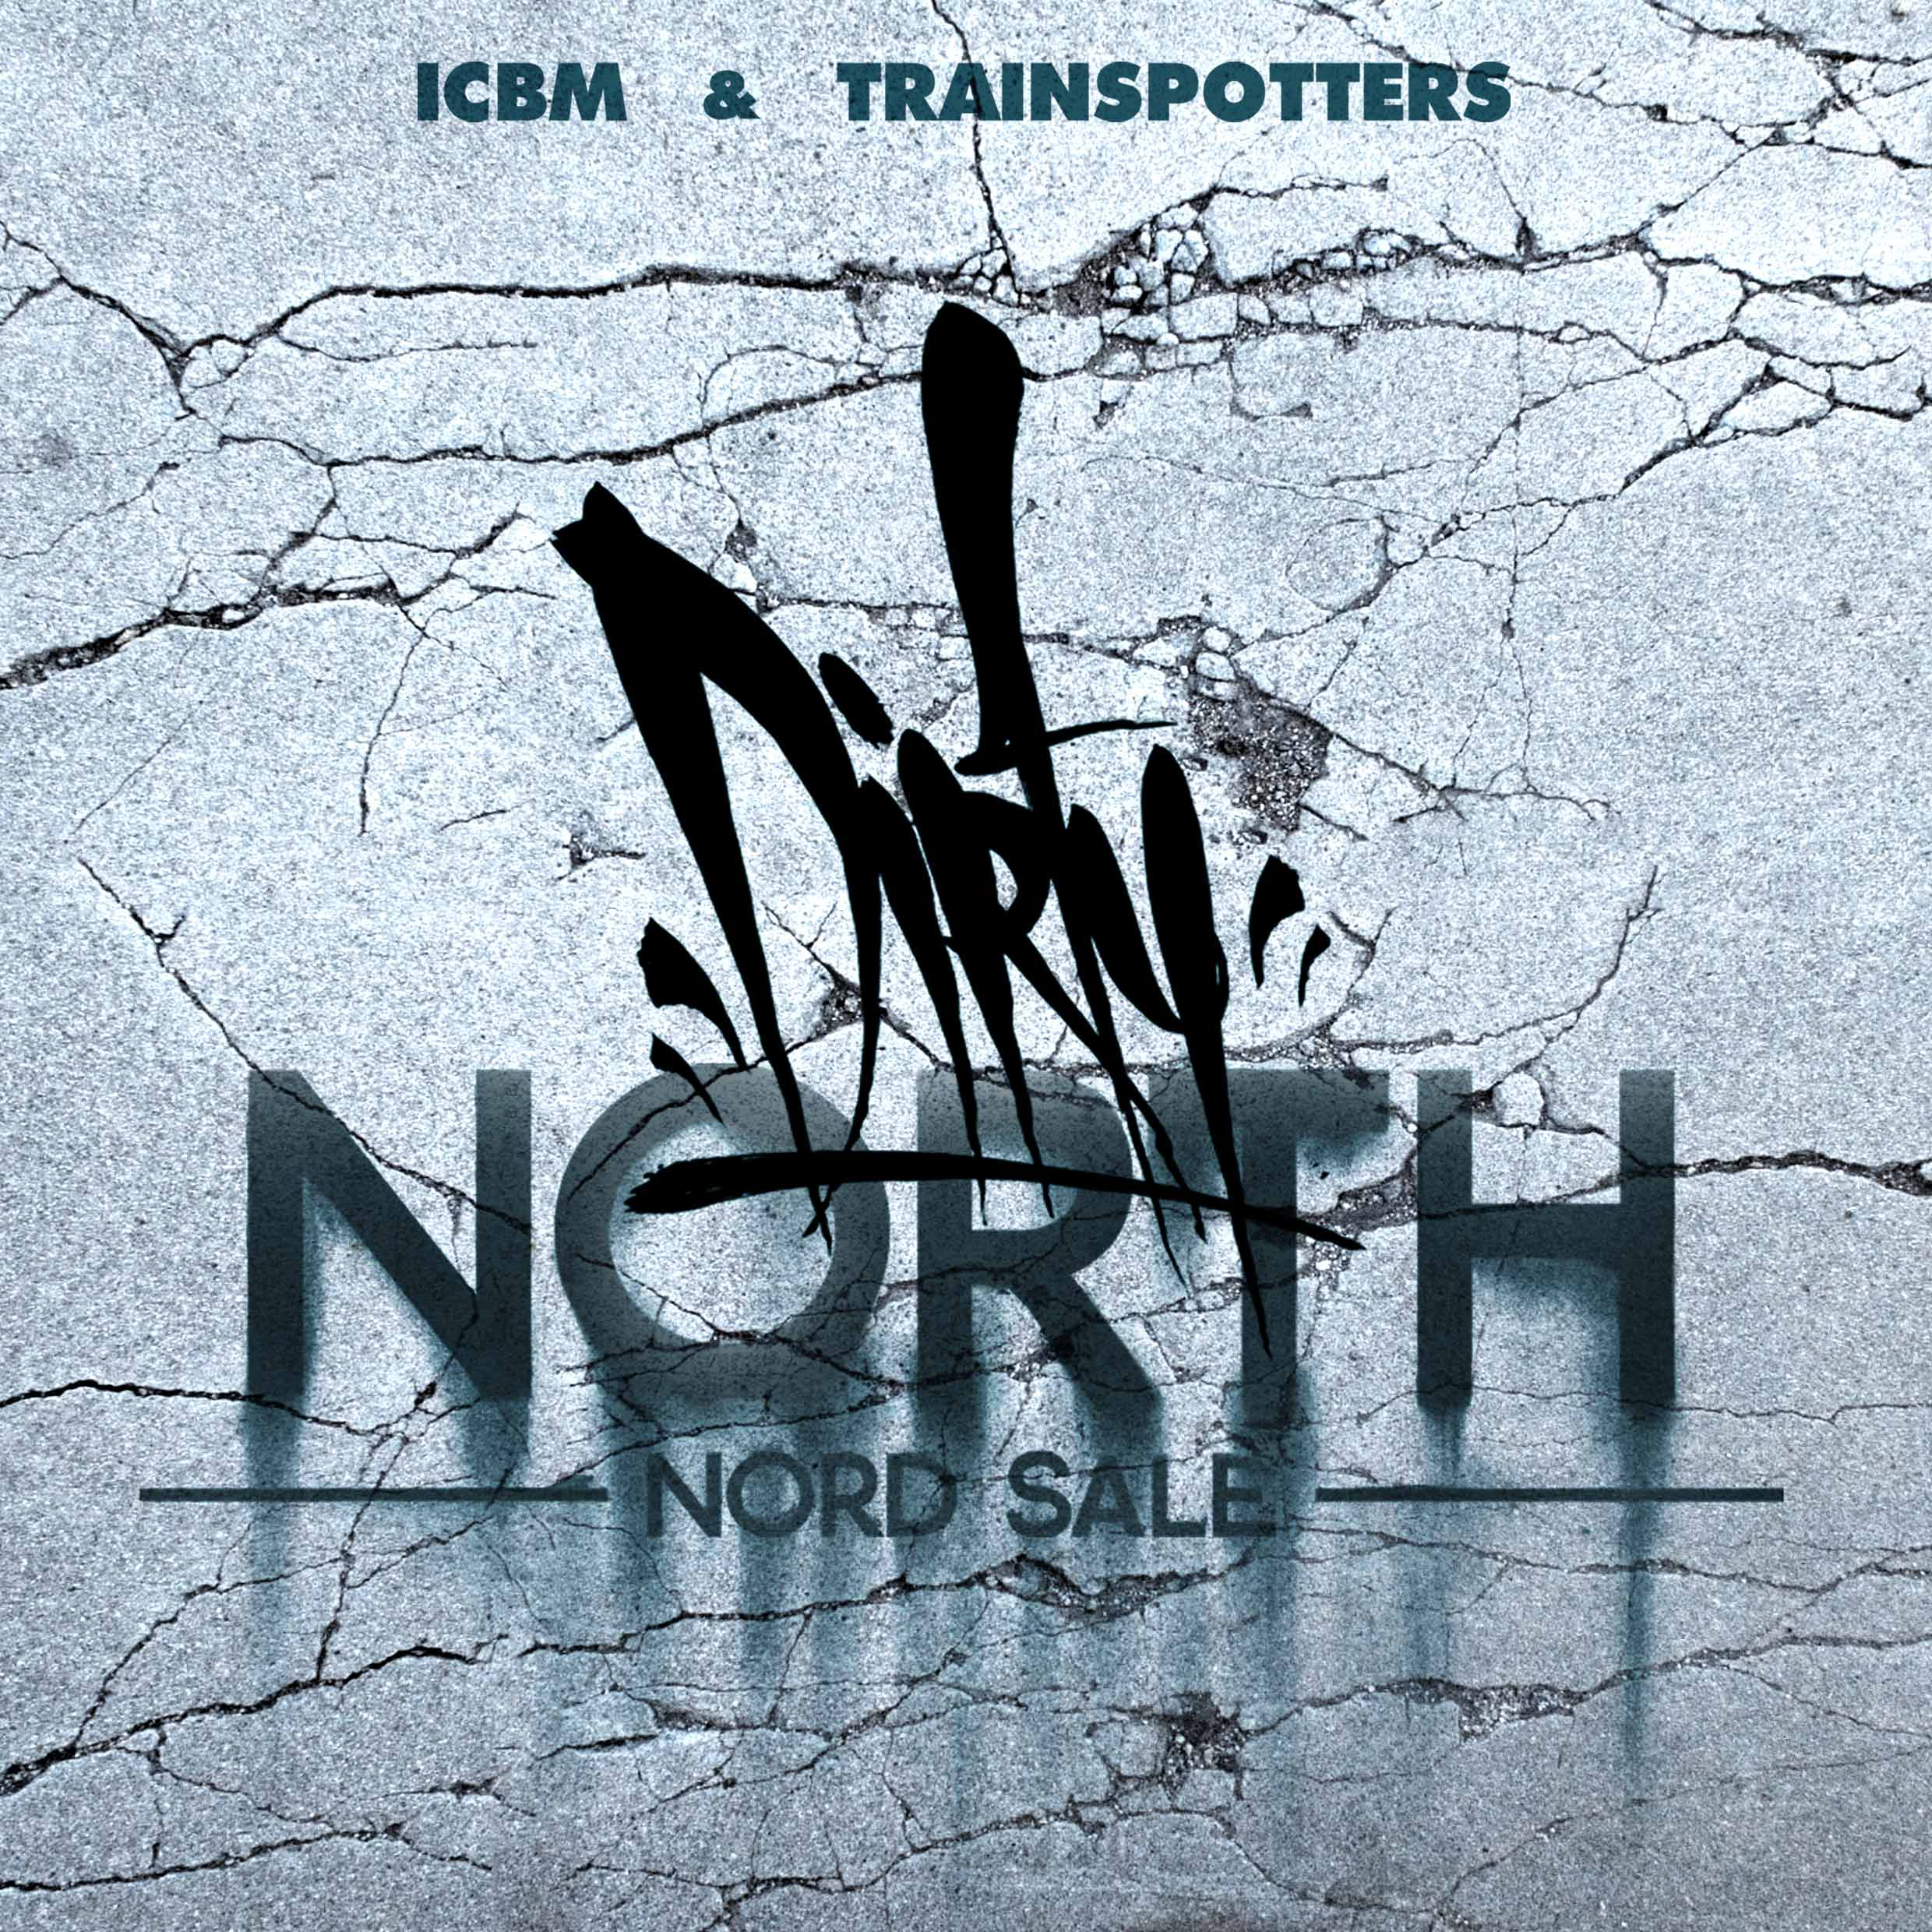 Video: ICBM & Trainspotters – Nord Sale (Trailer)